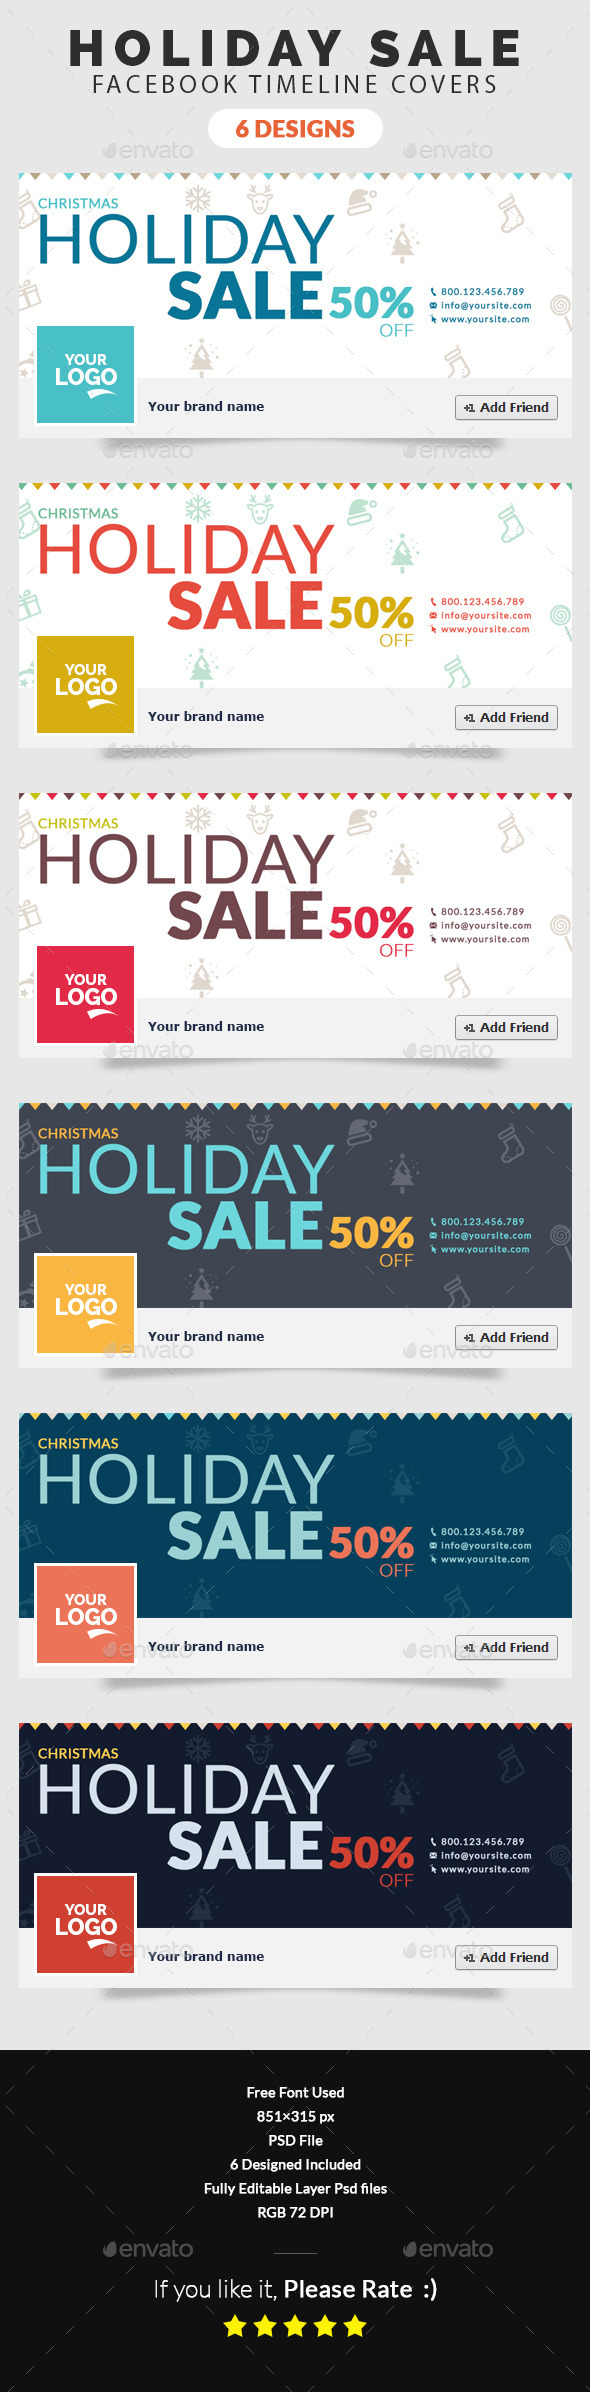 GraphicRiver Christmas Holiday Sale Facebook Timeline Cover 9731619